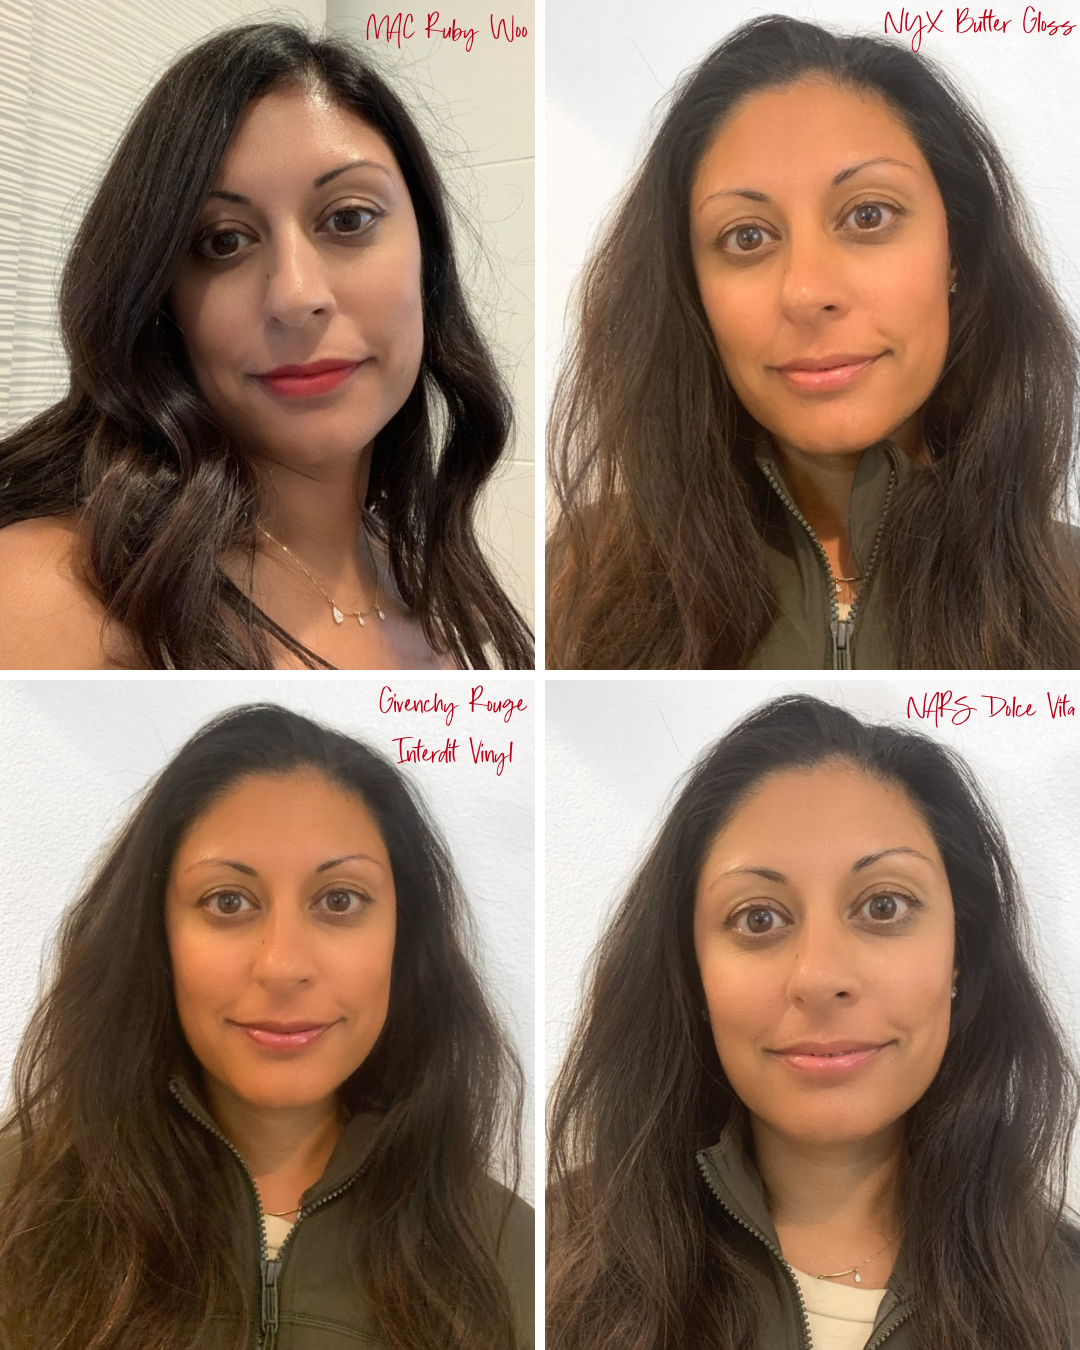 Go-To Lip Colors For Women Over 40 - Shilpa Wearing 4 Lip Colors including MAC Ruby Woo, NYX Butter Gloss, Givenchy Rouge Interdit Vinyl, and NARS Dolce Vita